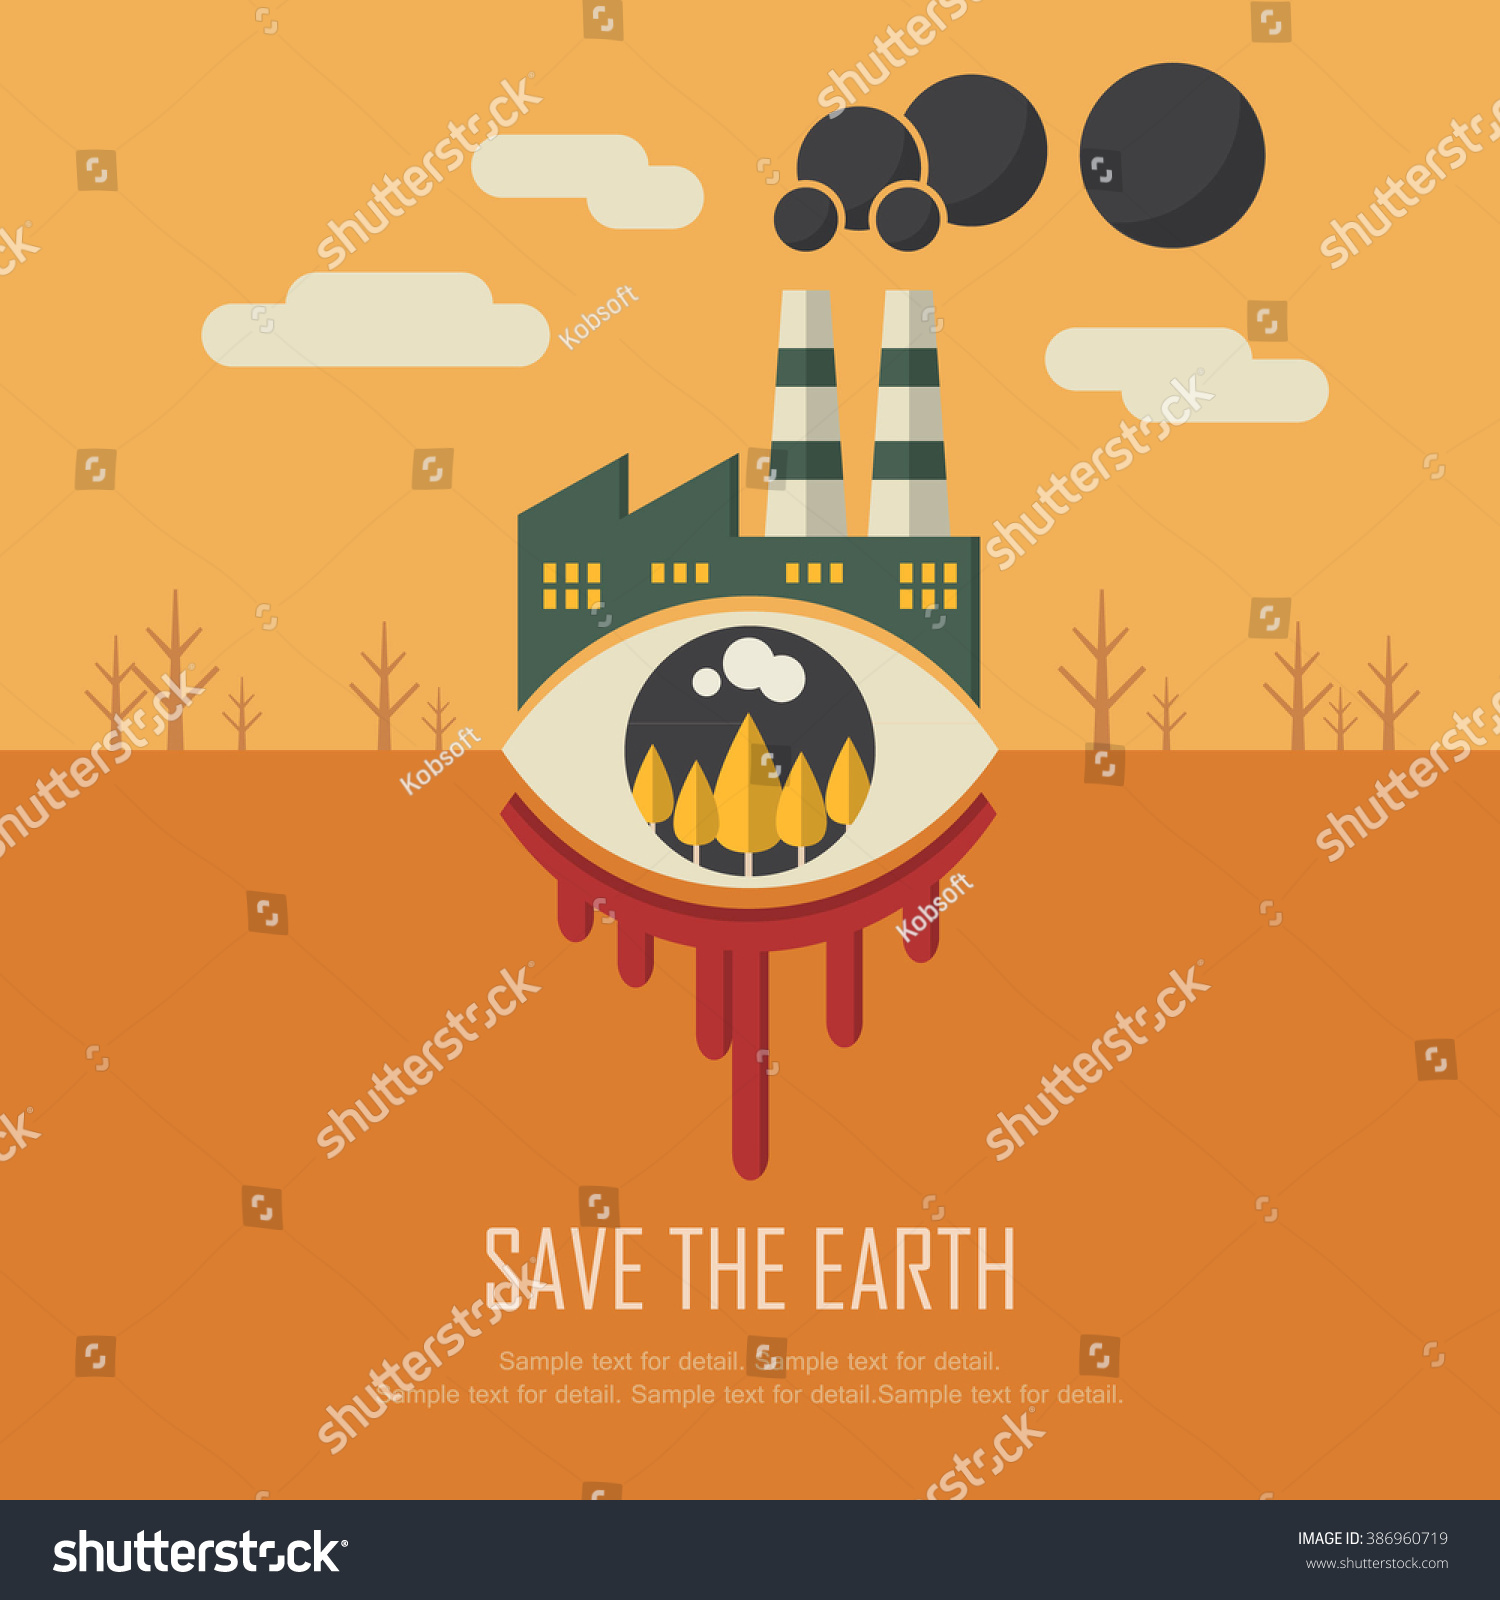 Poster design on save earth - Save The Earth Campaign Creative Retro Flat Design Inspiring Vector Graphic Illustrations